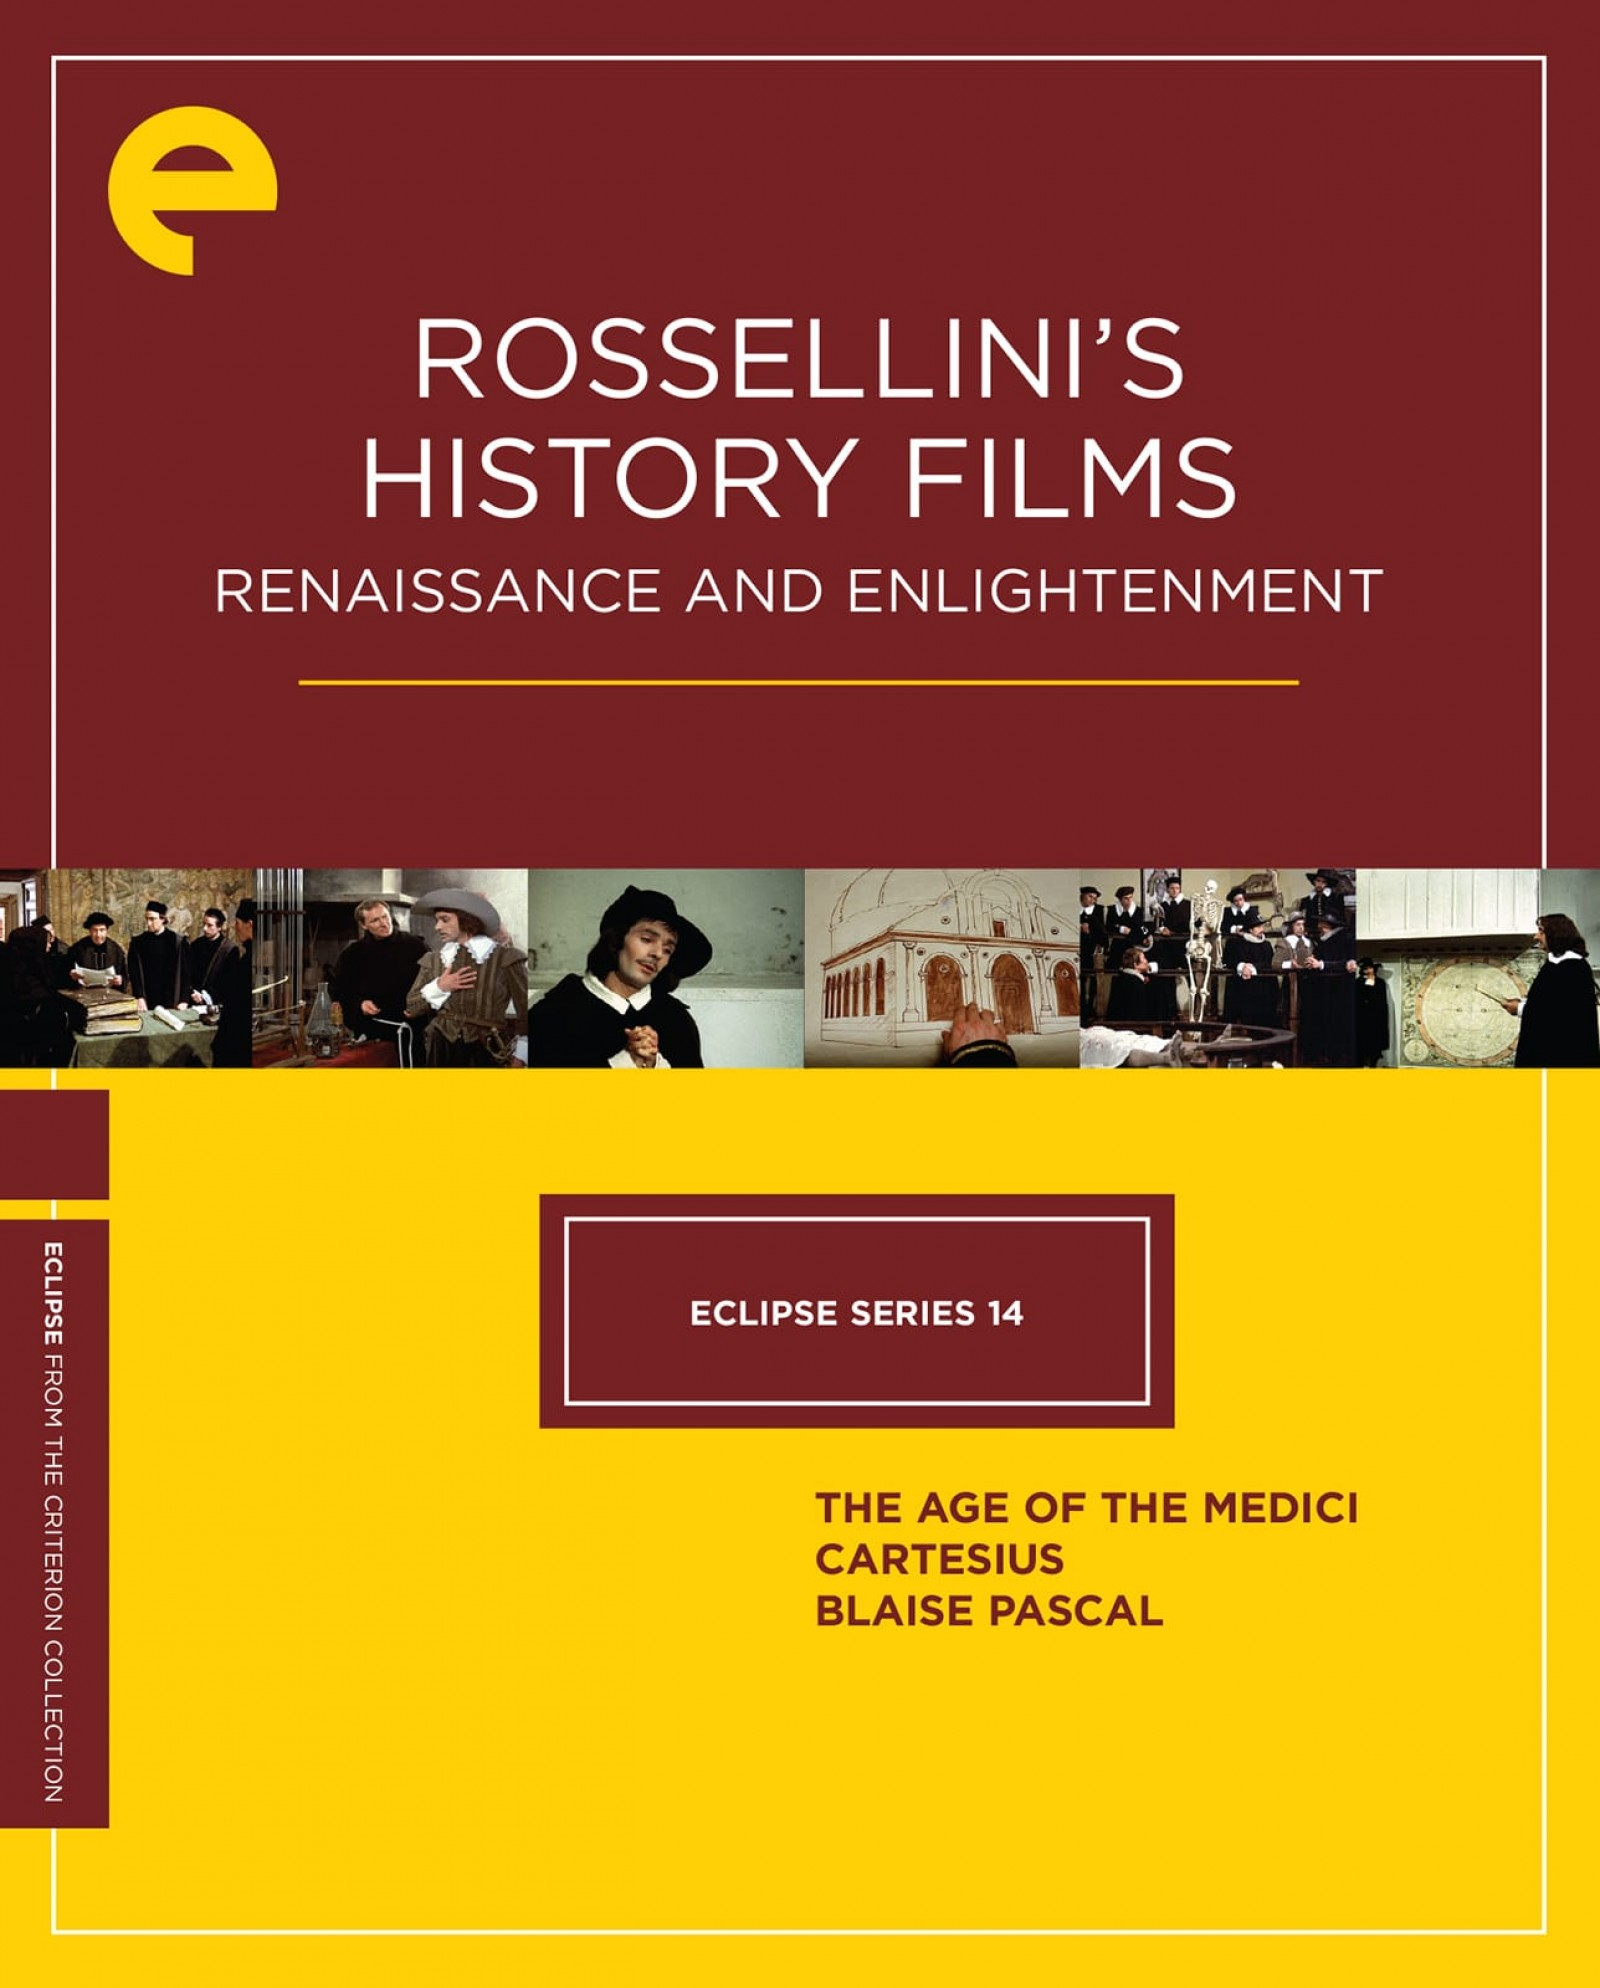 Eclipse Series 14: Roberto Rossellini's History Films